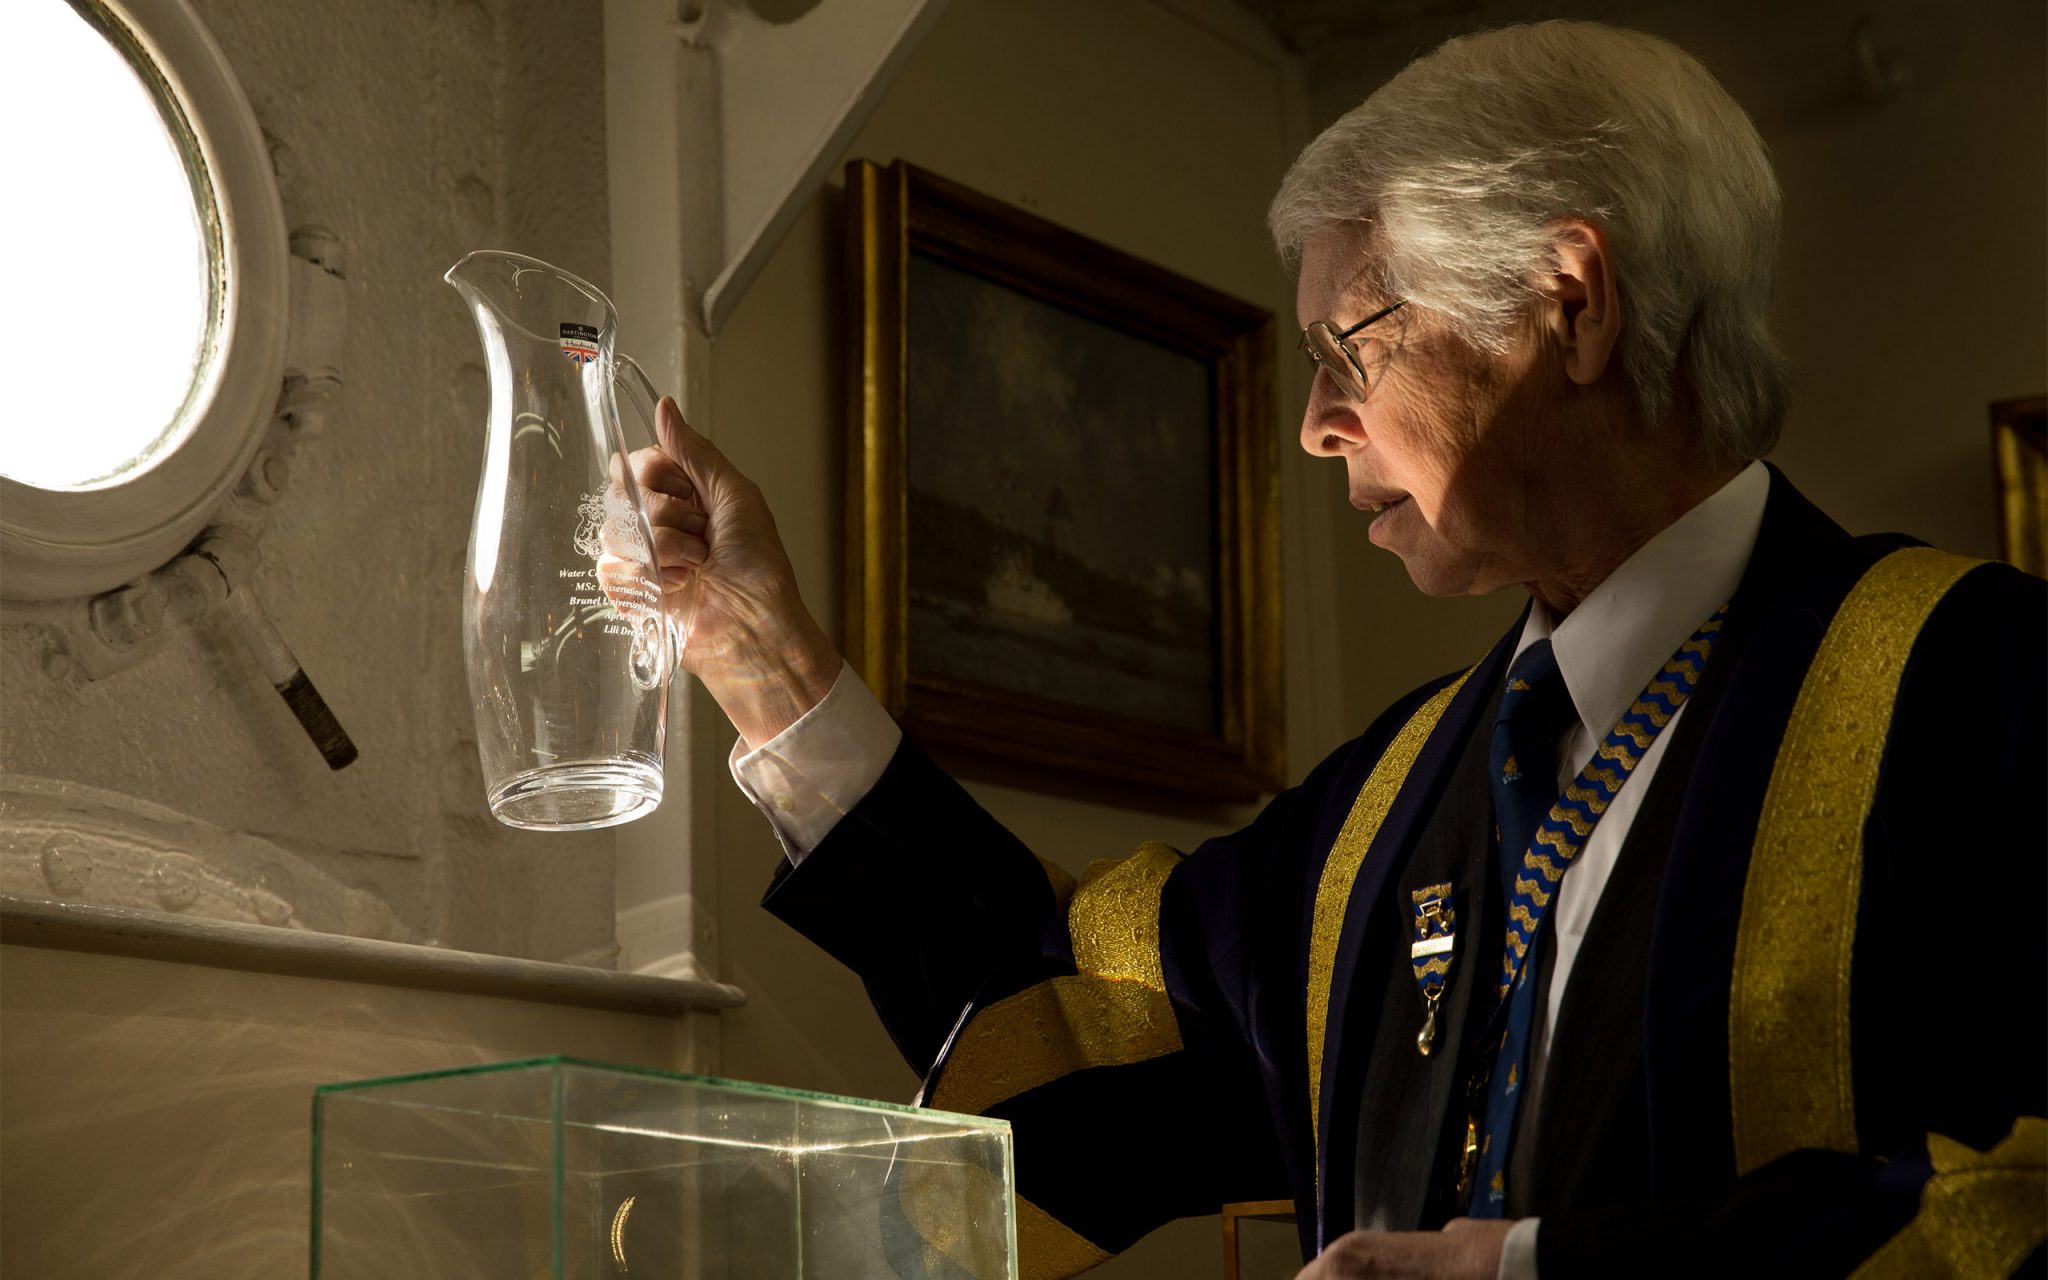 Carey Marks Photography, Worshipful Company of Water Conservators, City of London Corporation, Guilds, London Guilds, Livery Company, portrait, Reportage, documentary photography.